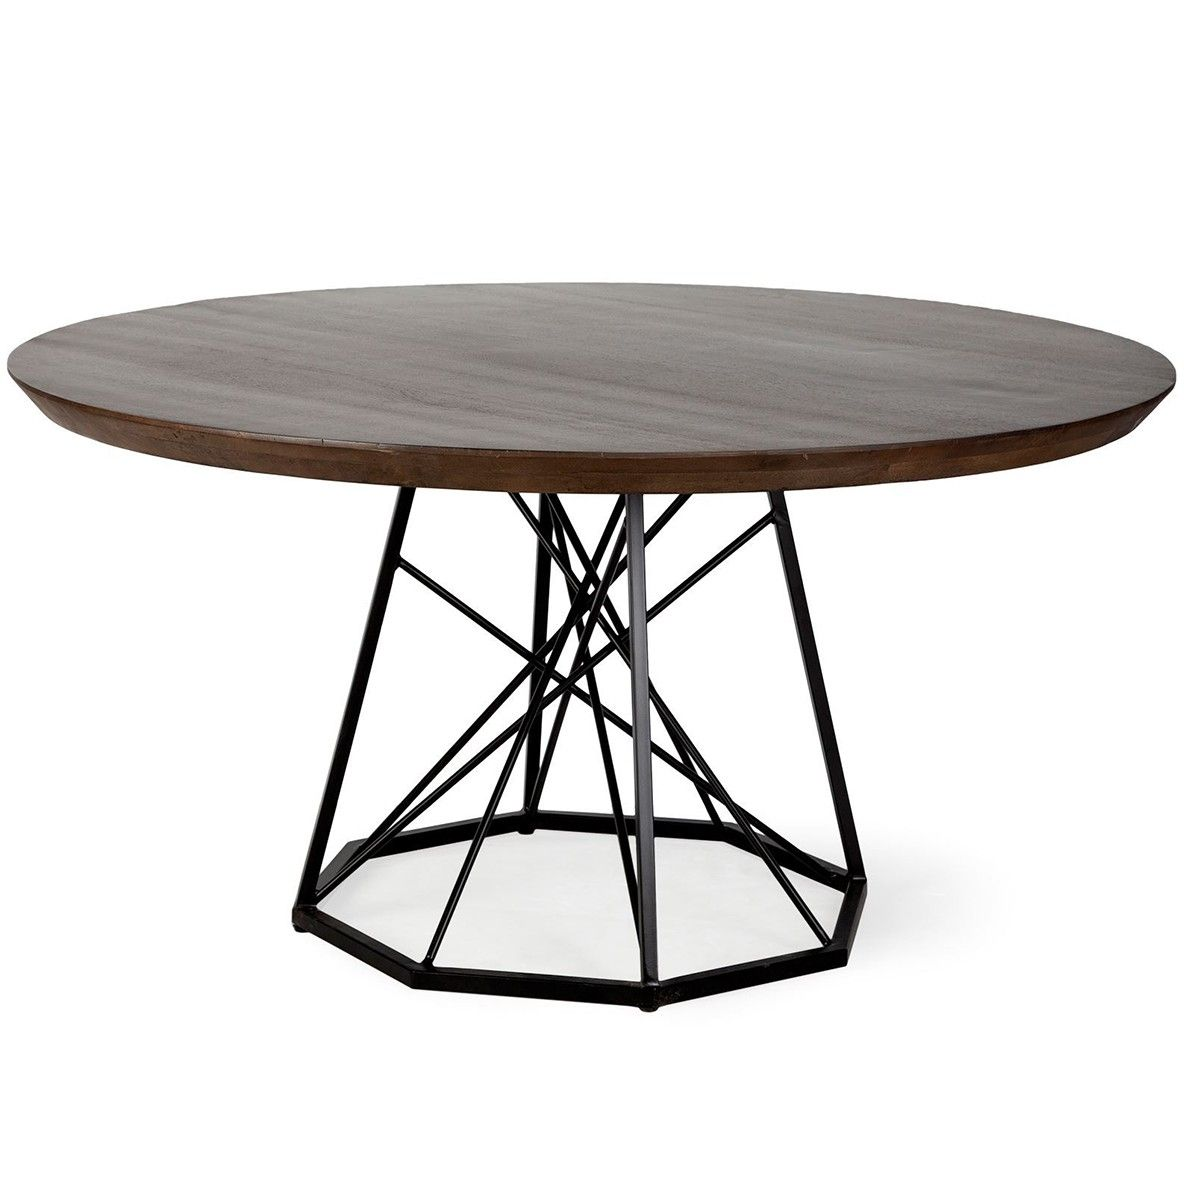 Rustic Round Metal Cris Cross Base Table Metal Base Dining Table Kitchen Table Metal Industrial Dining Table Round